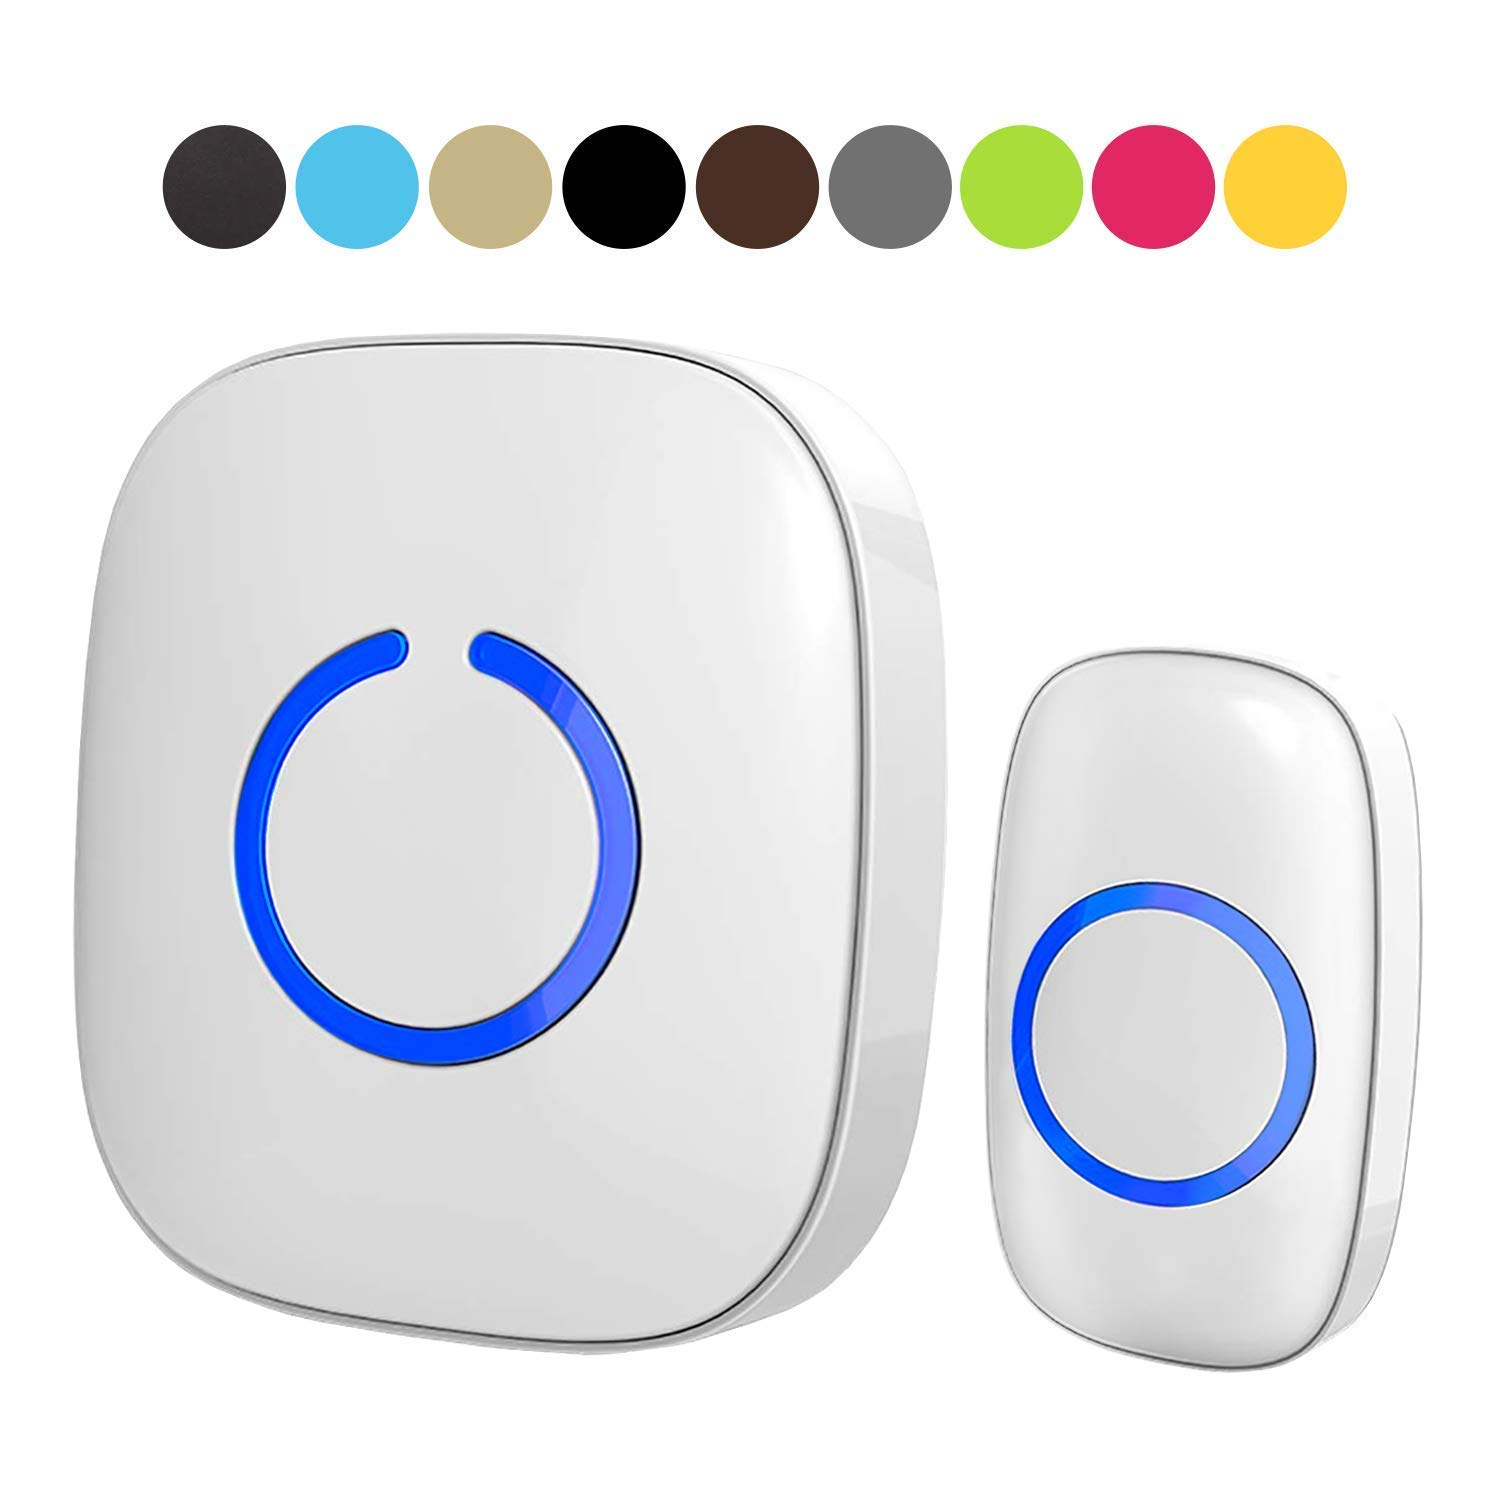 Best Wireless Doorbell: SadoTech Model C